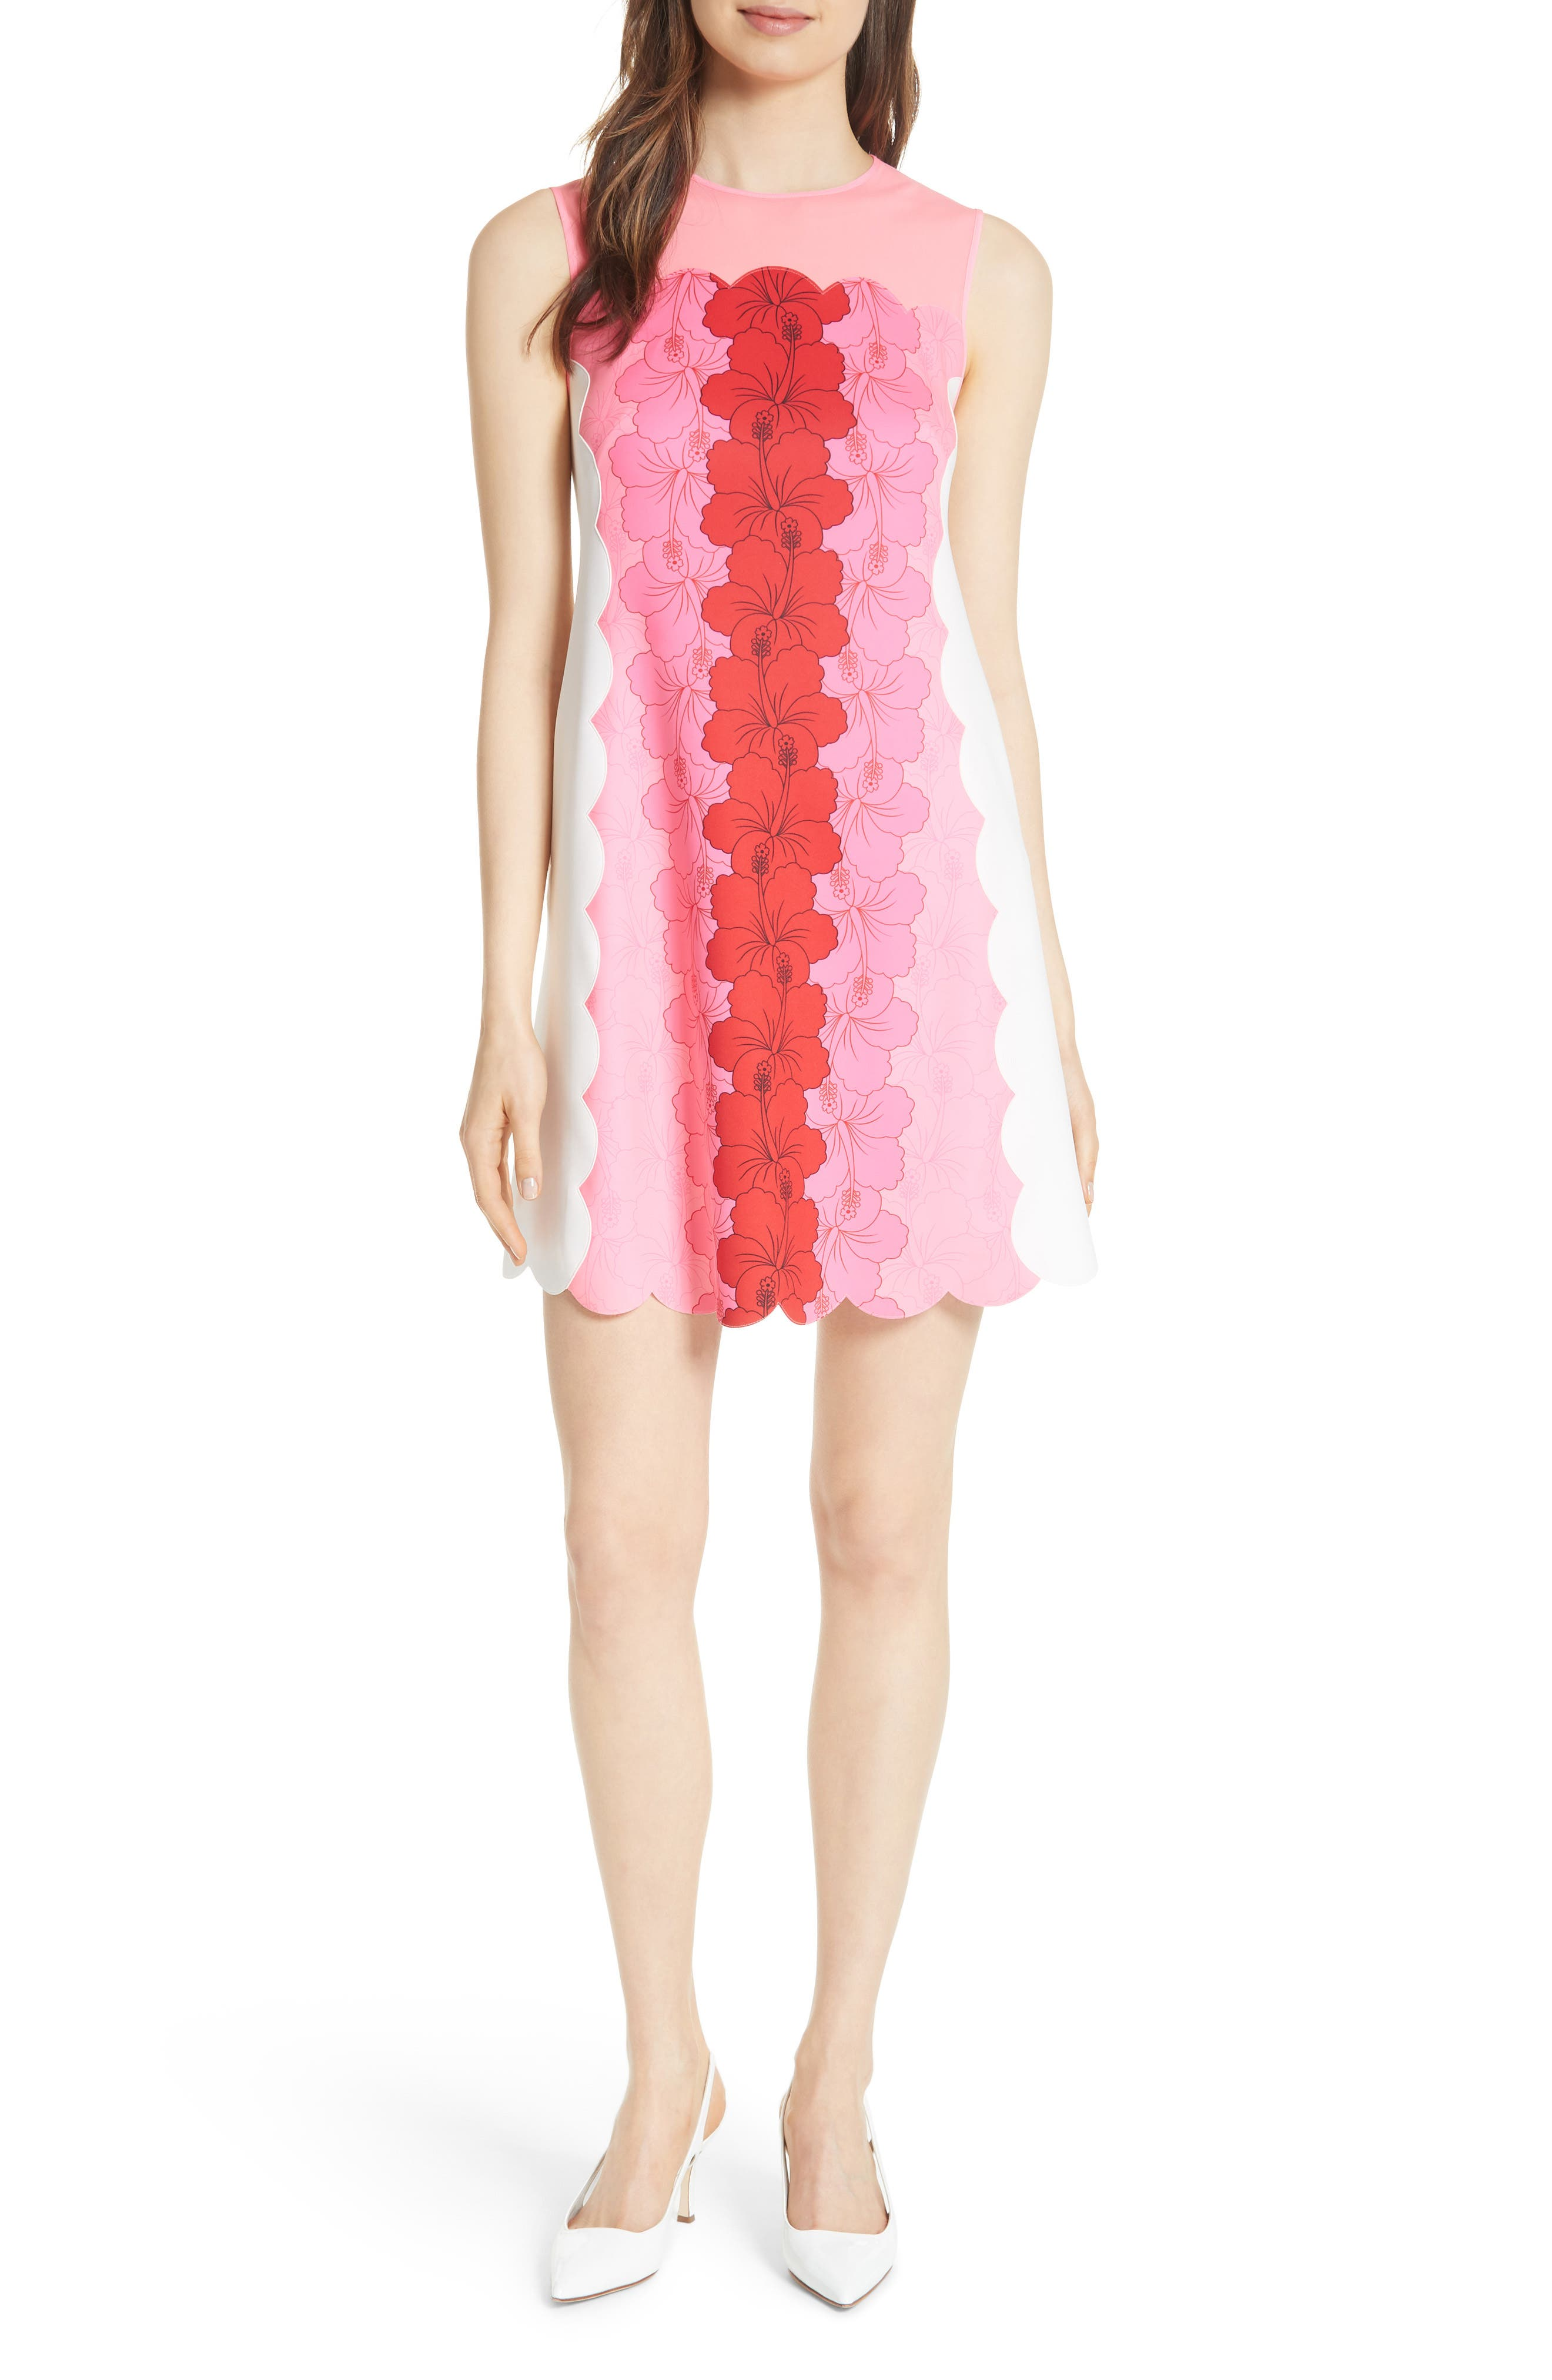 Angge Happiness Dress,                         Main,                         color, Neon Pink